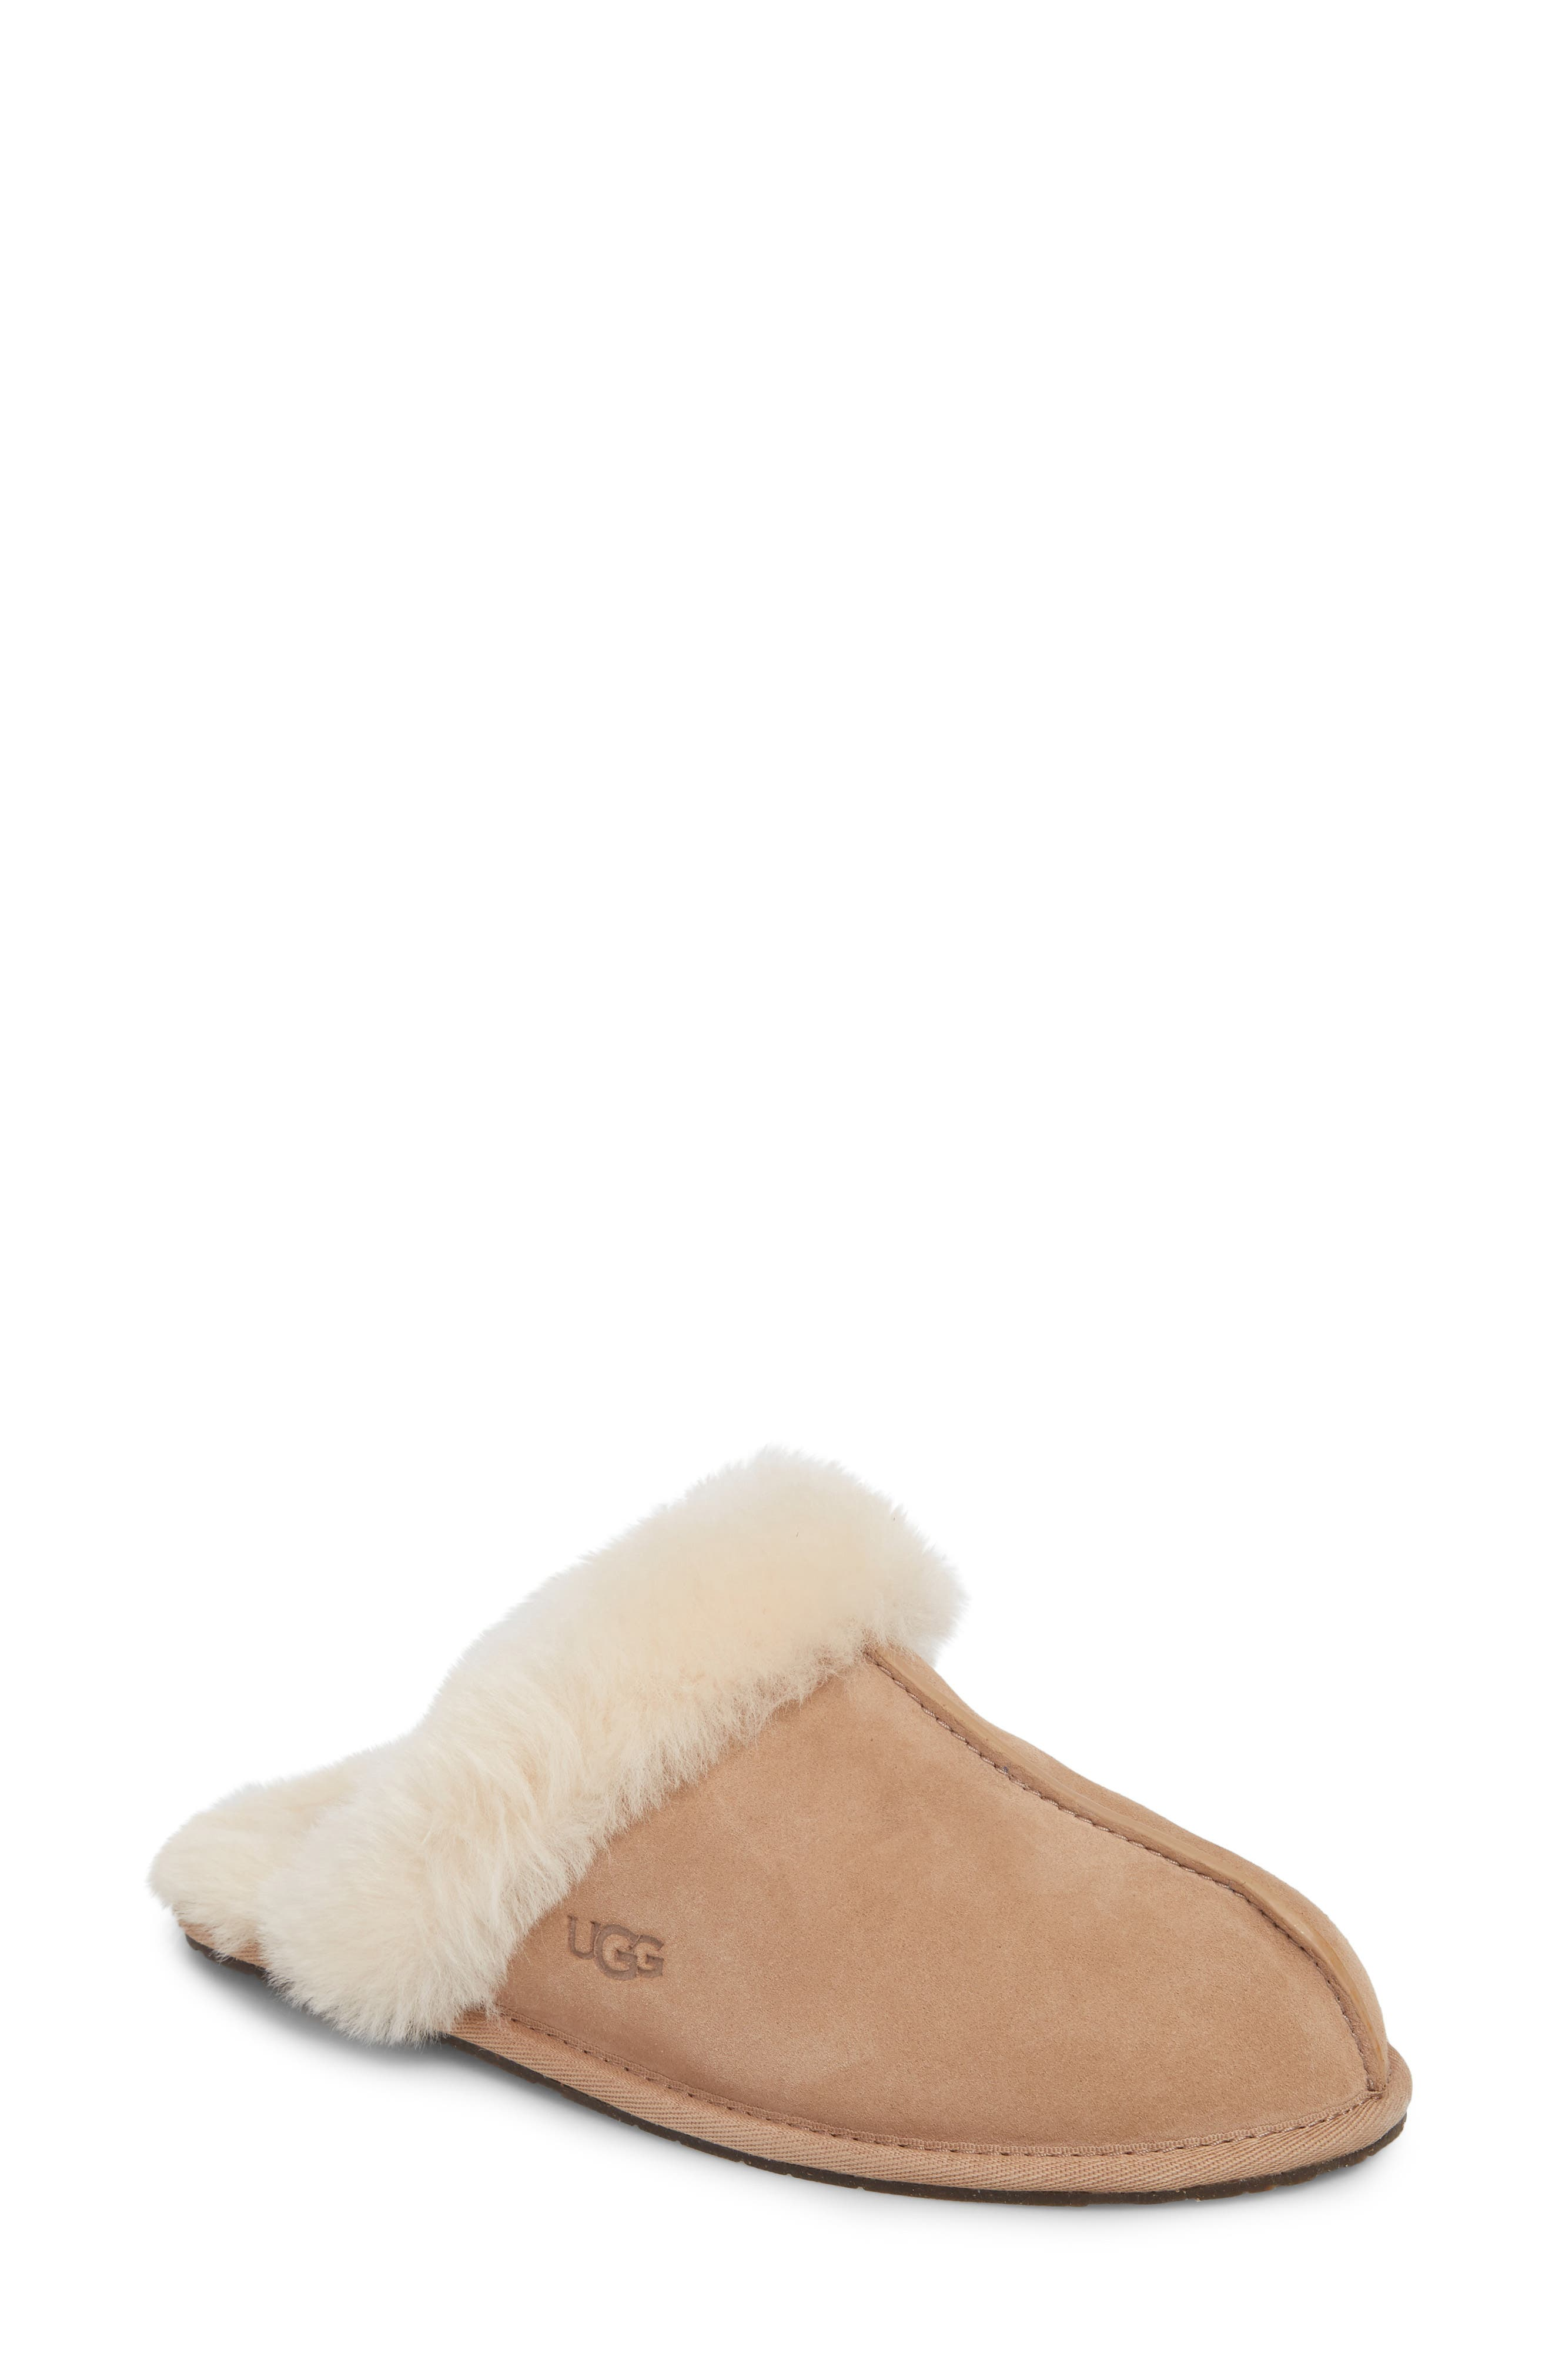 ,                             Scuffette II Water Resistant Slipper,                             Main thumbnail 82, color,                             210